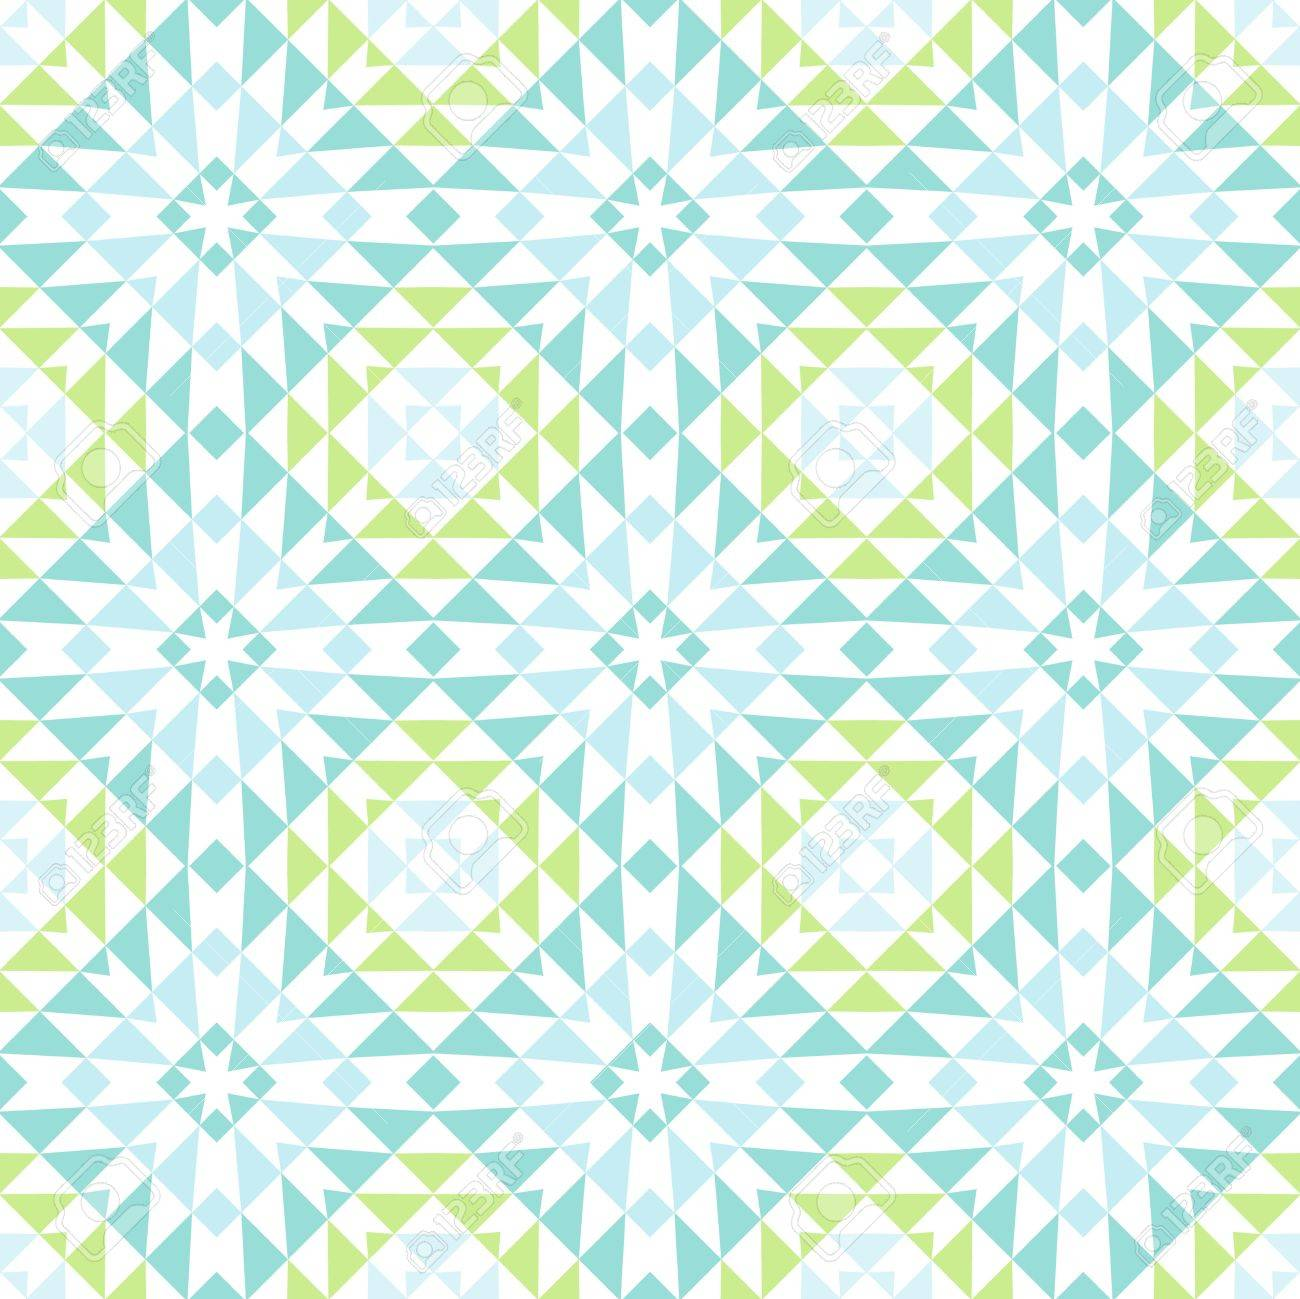 abstract vintage geometric wallpaper pattern seamless background Stock Vector - 15031141